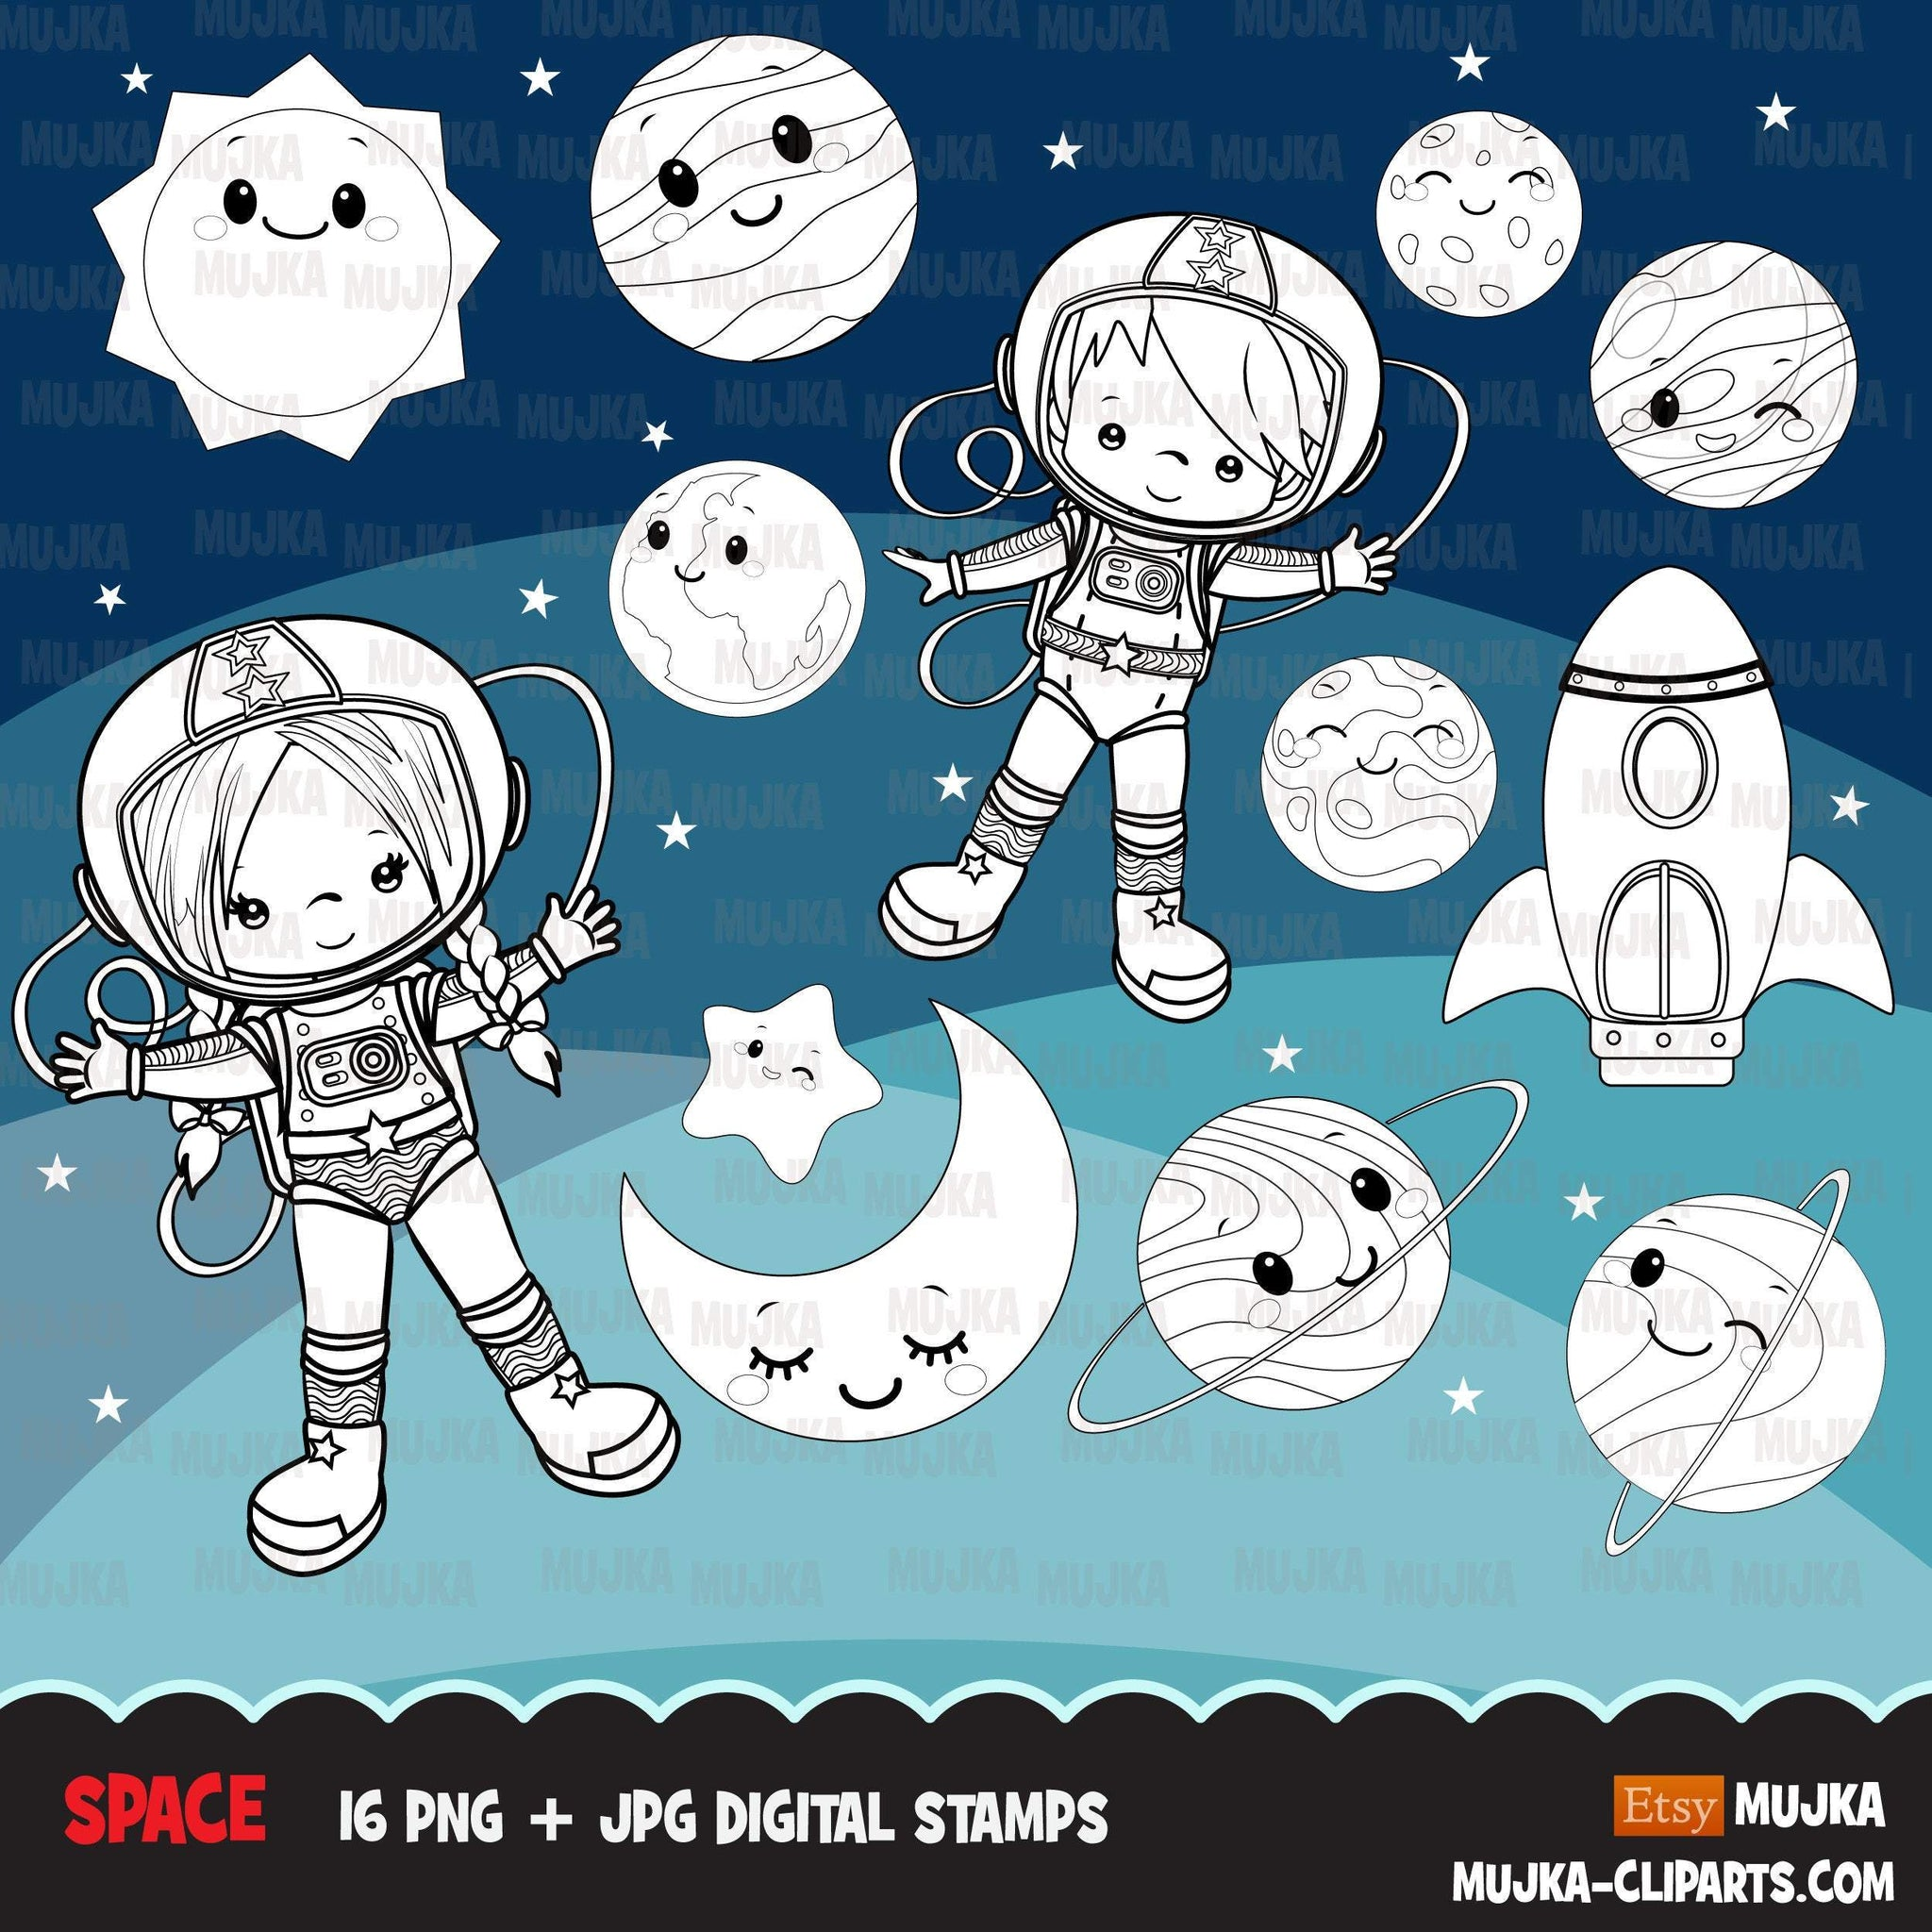 Space astronauts Digital stamps, planets, mars, jupiter, saturn, space rocket graphics, coloring book black and white outline clip art